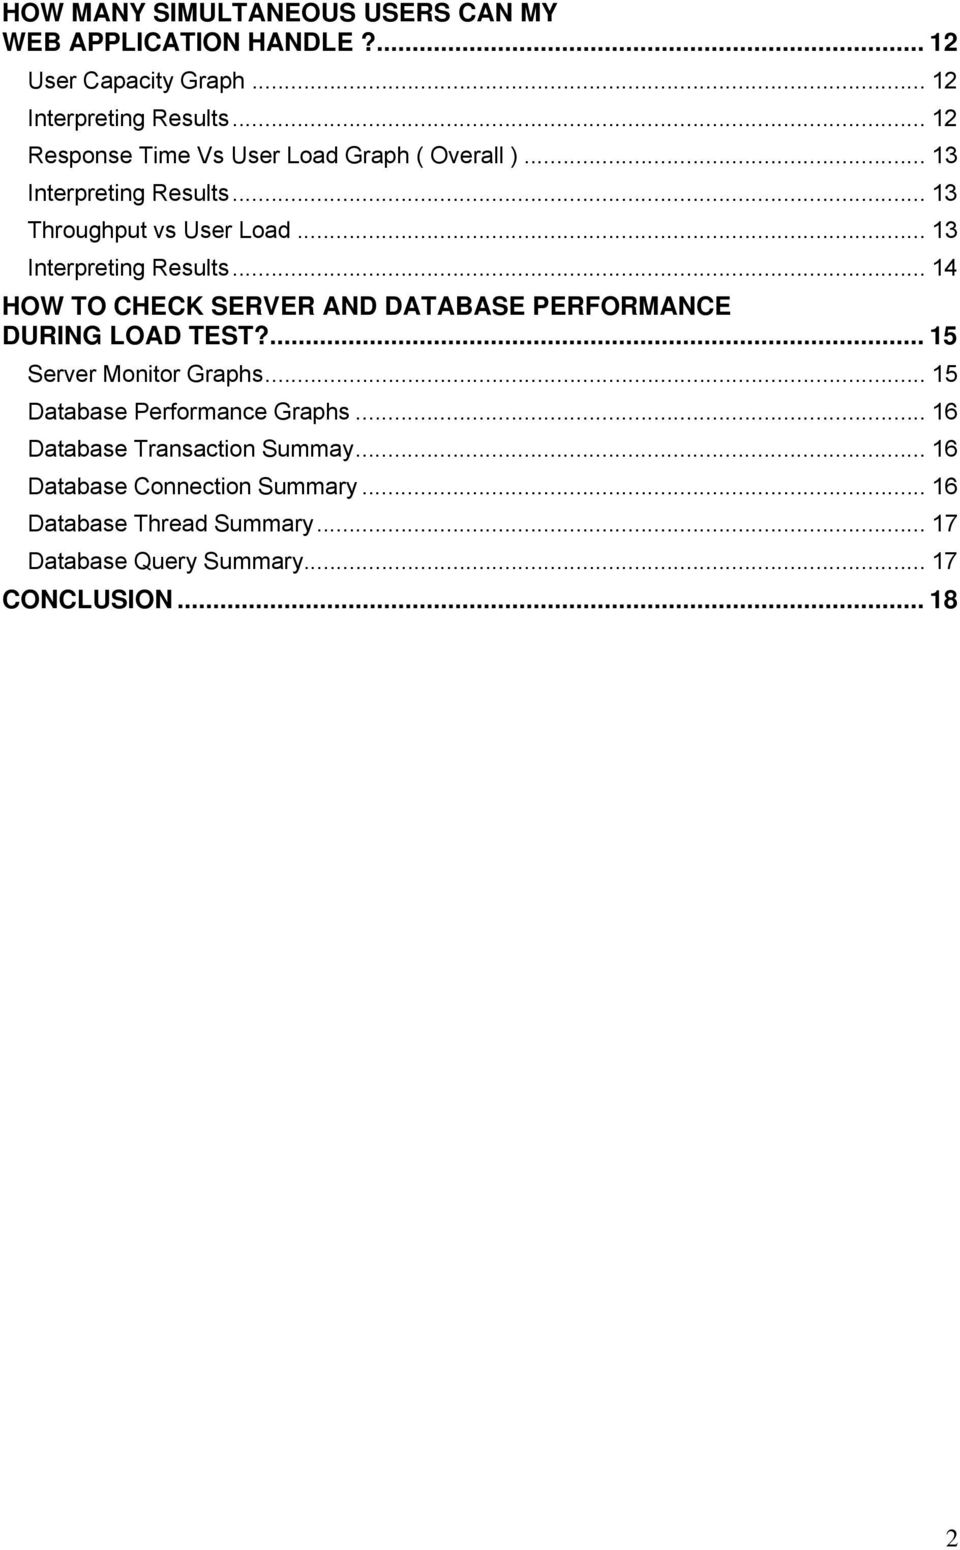 .. 13 Throughput vs User Load... 13 Interpreting Results... 14 HOW TO CHECK SERVER AND DATABASE PERFORMANCE DURING LOAD TEST?